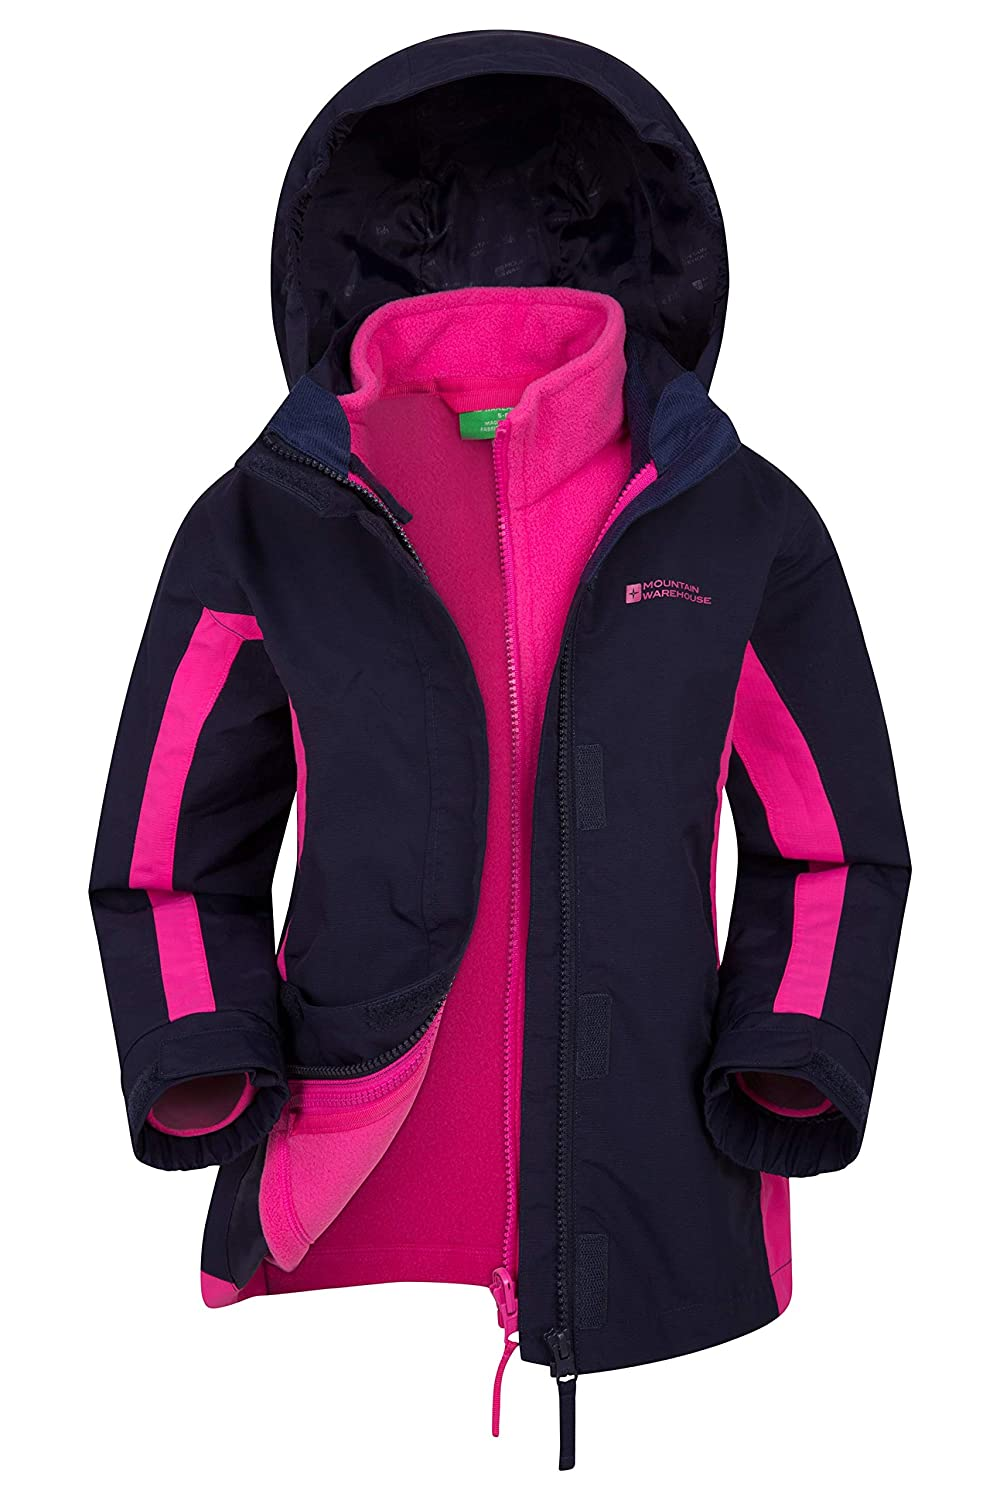 Mountain Warehouse Lightning 3 in 1 Kids Waterproof Rain Jacket - Childrens Raincoat